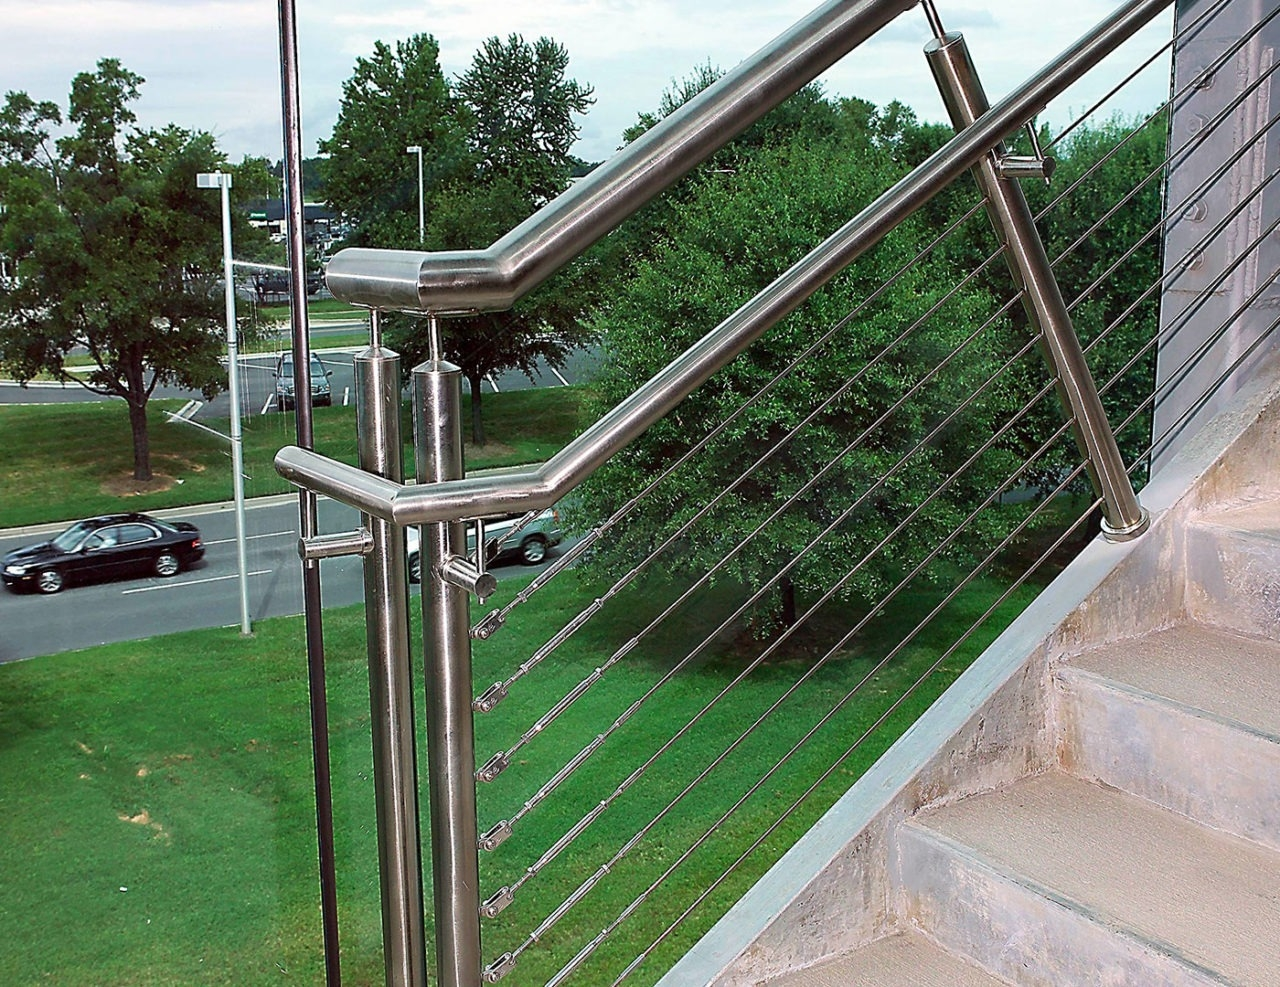 Casino Commercial Cable Railings Trex Commercial Products   Steel Cable Stair Railing   Diy   White   Balcony   Steel Wire   Industrial